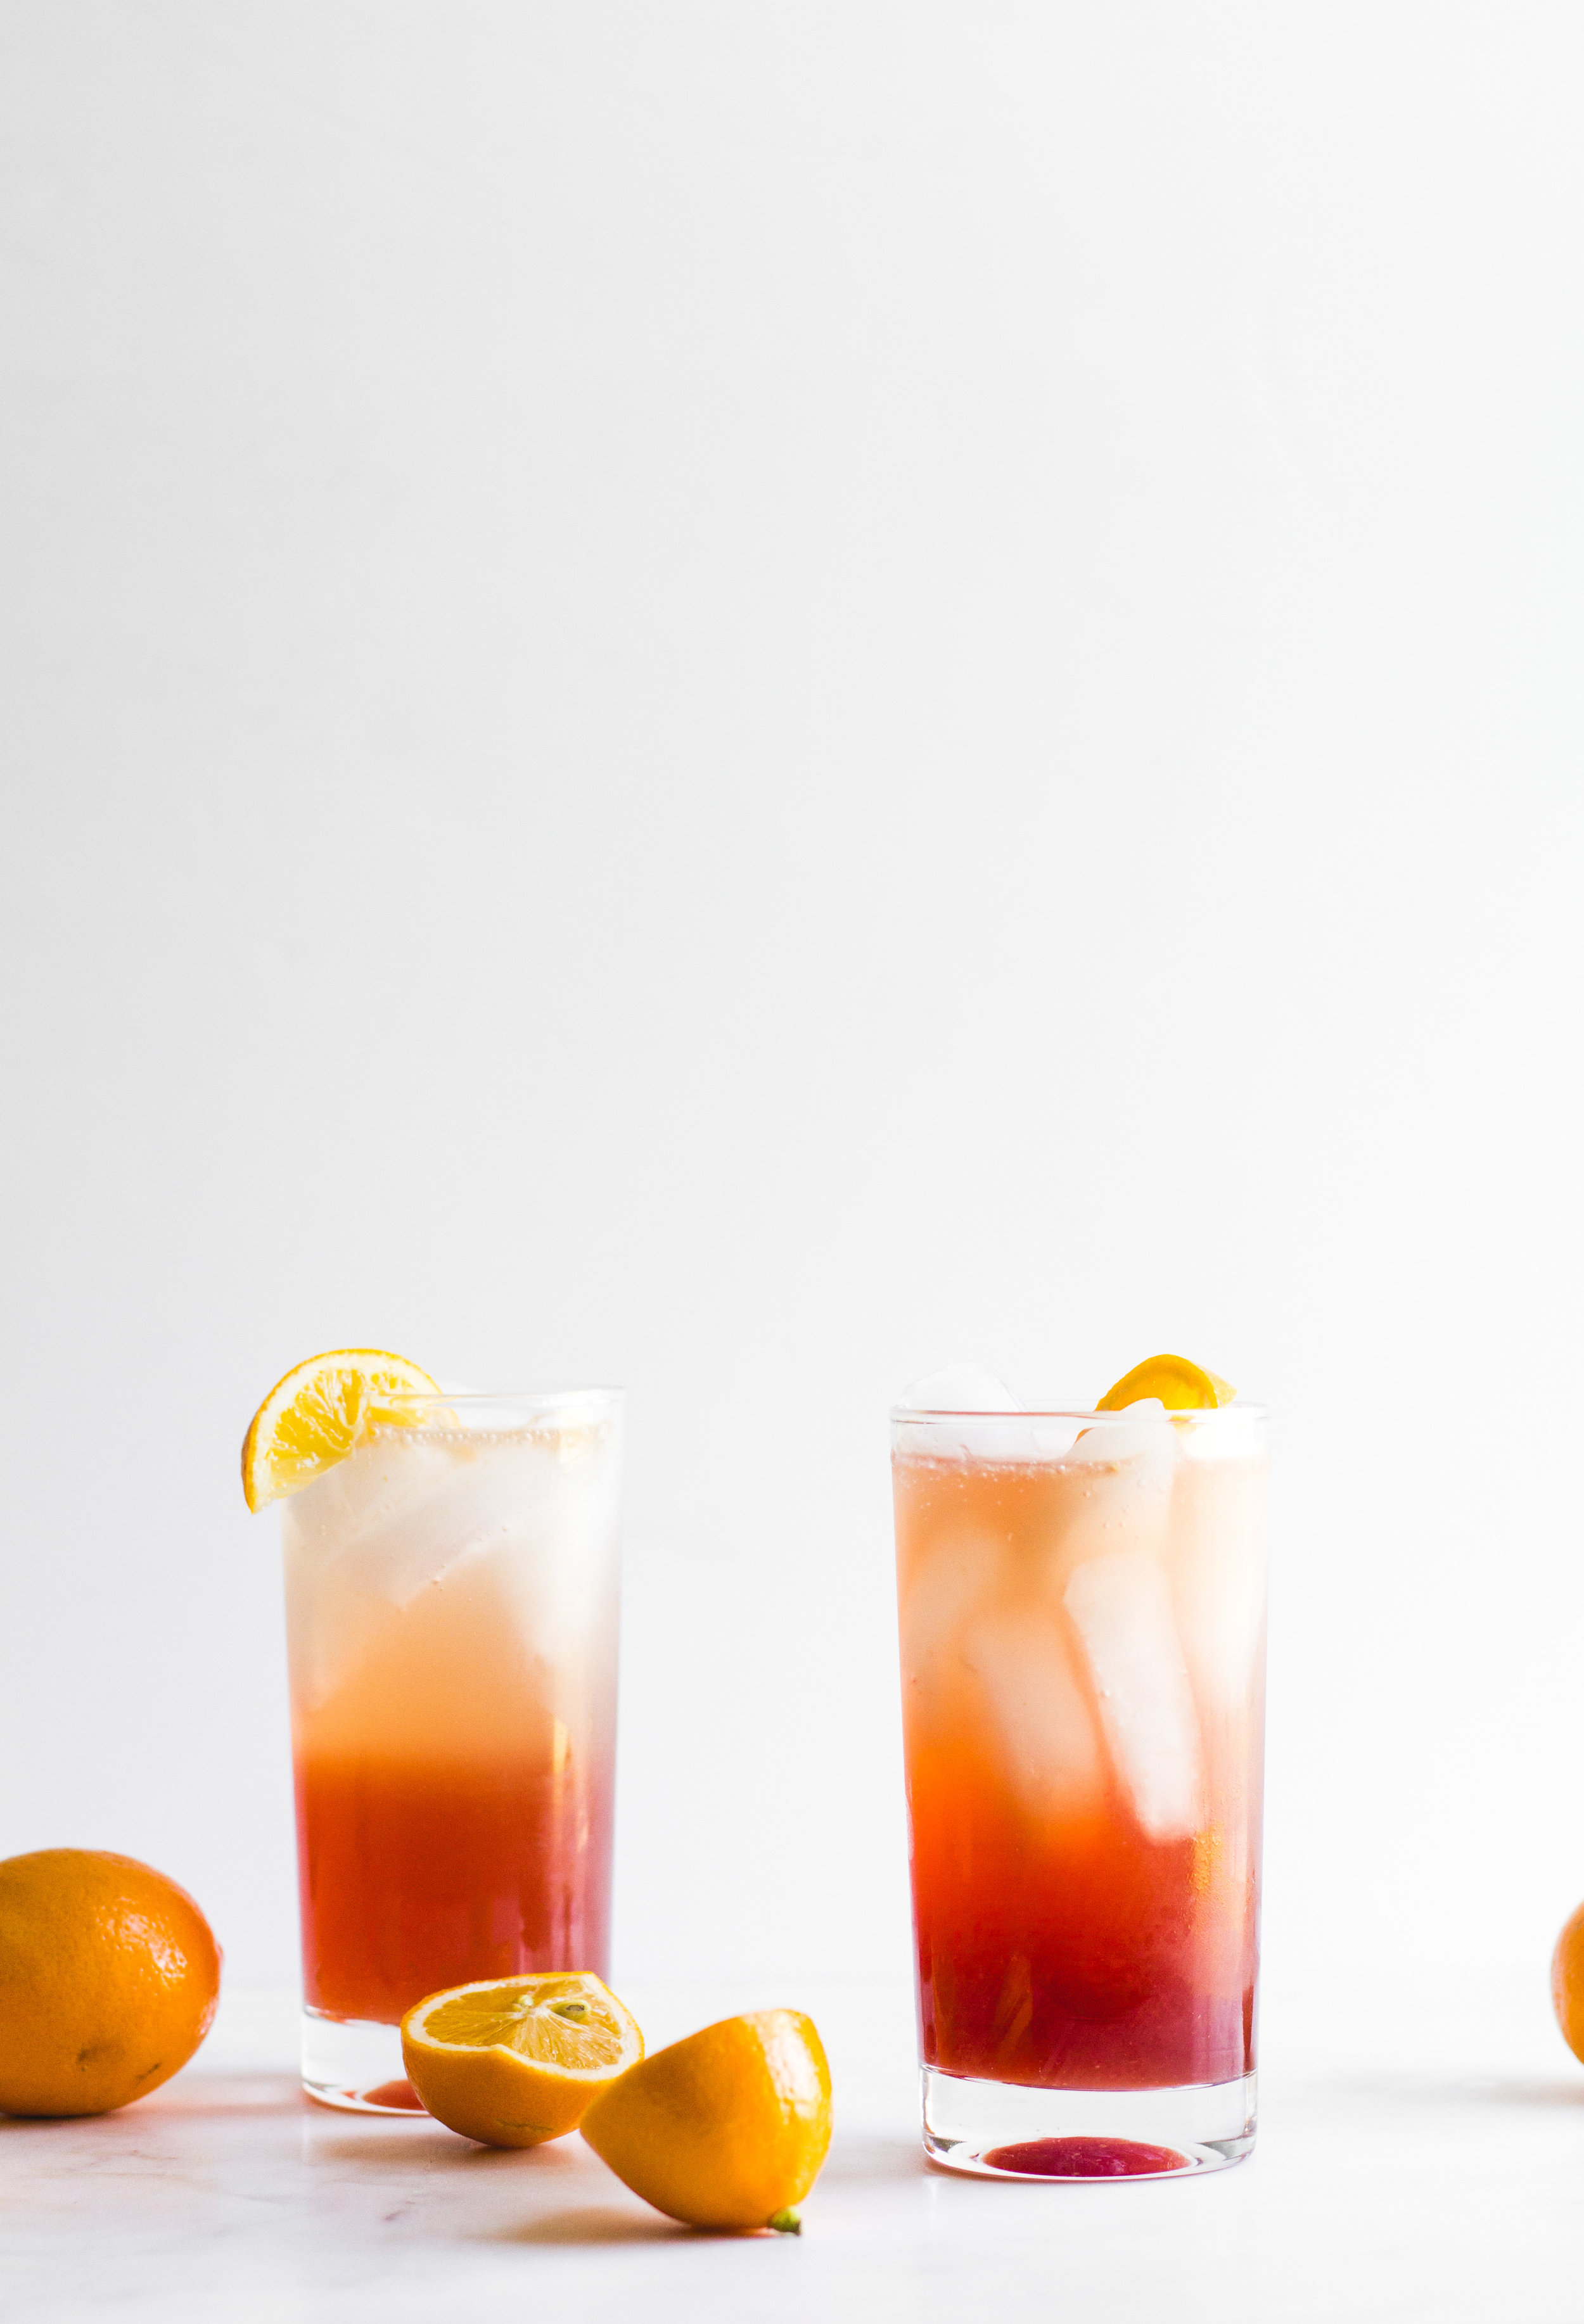 Meyer Lemon + Pomegranate Tom Collins | Sarah J. Hauser